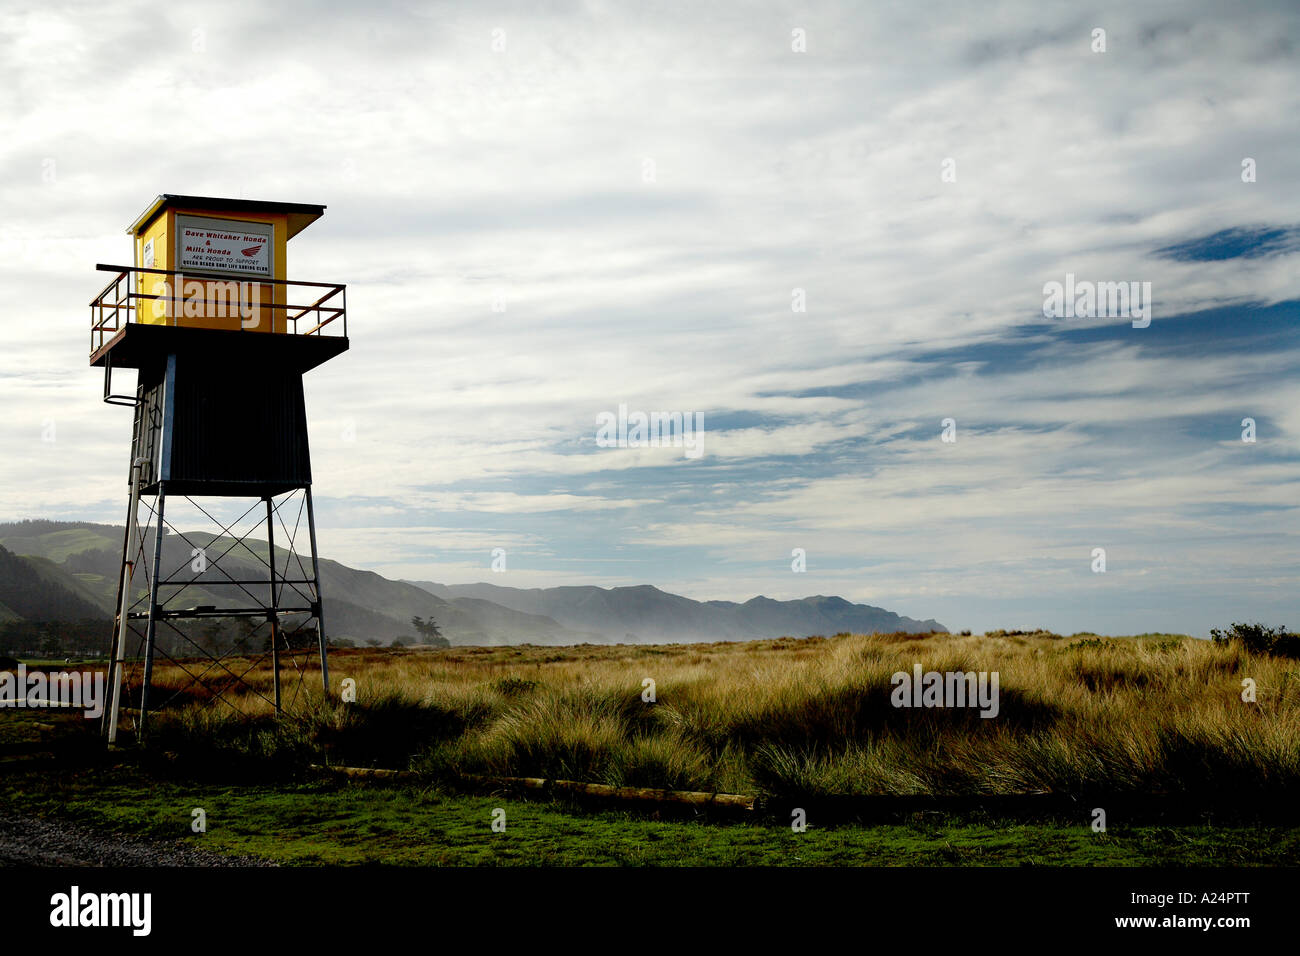 remote life gaurd station shut up for winter at ocean beach hawkes bay Stock Photo